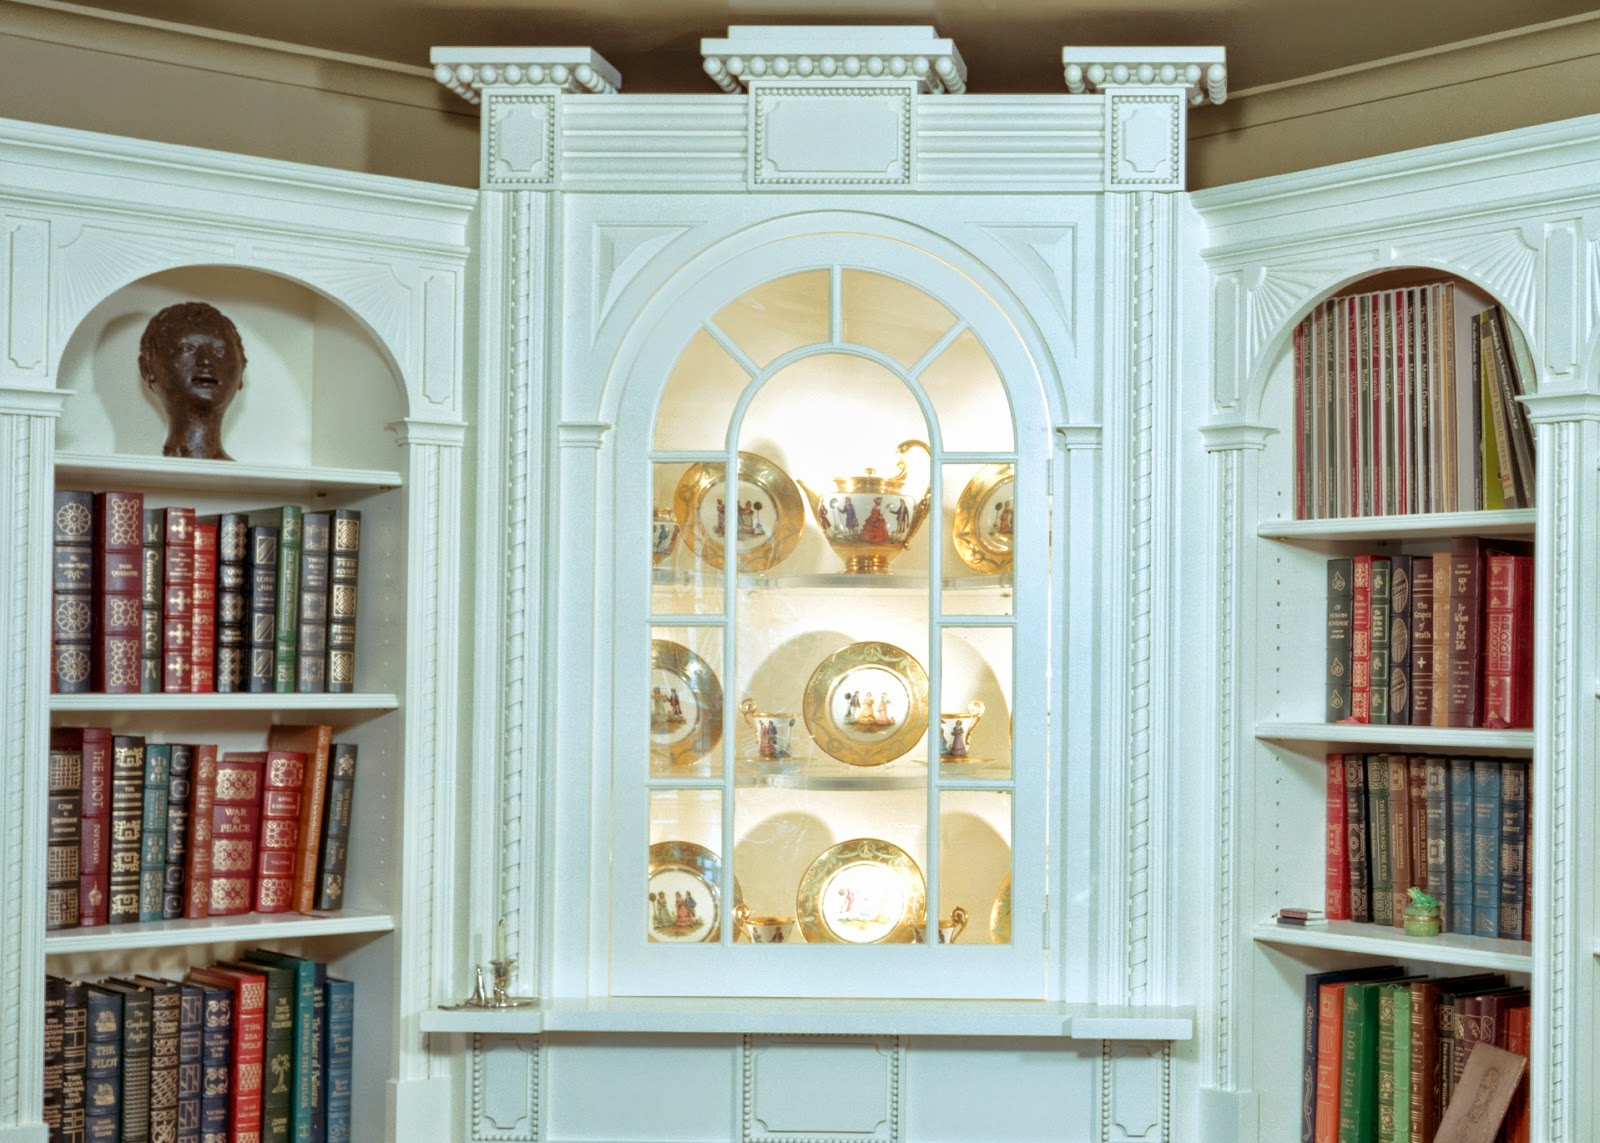 painted, white, library with fireplace and cabinetry, design styles and ideas for interior woodworking